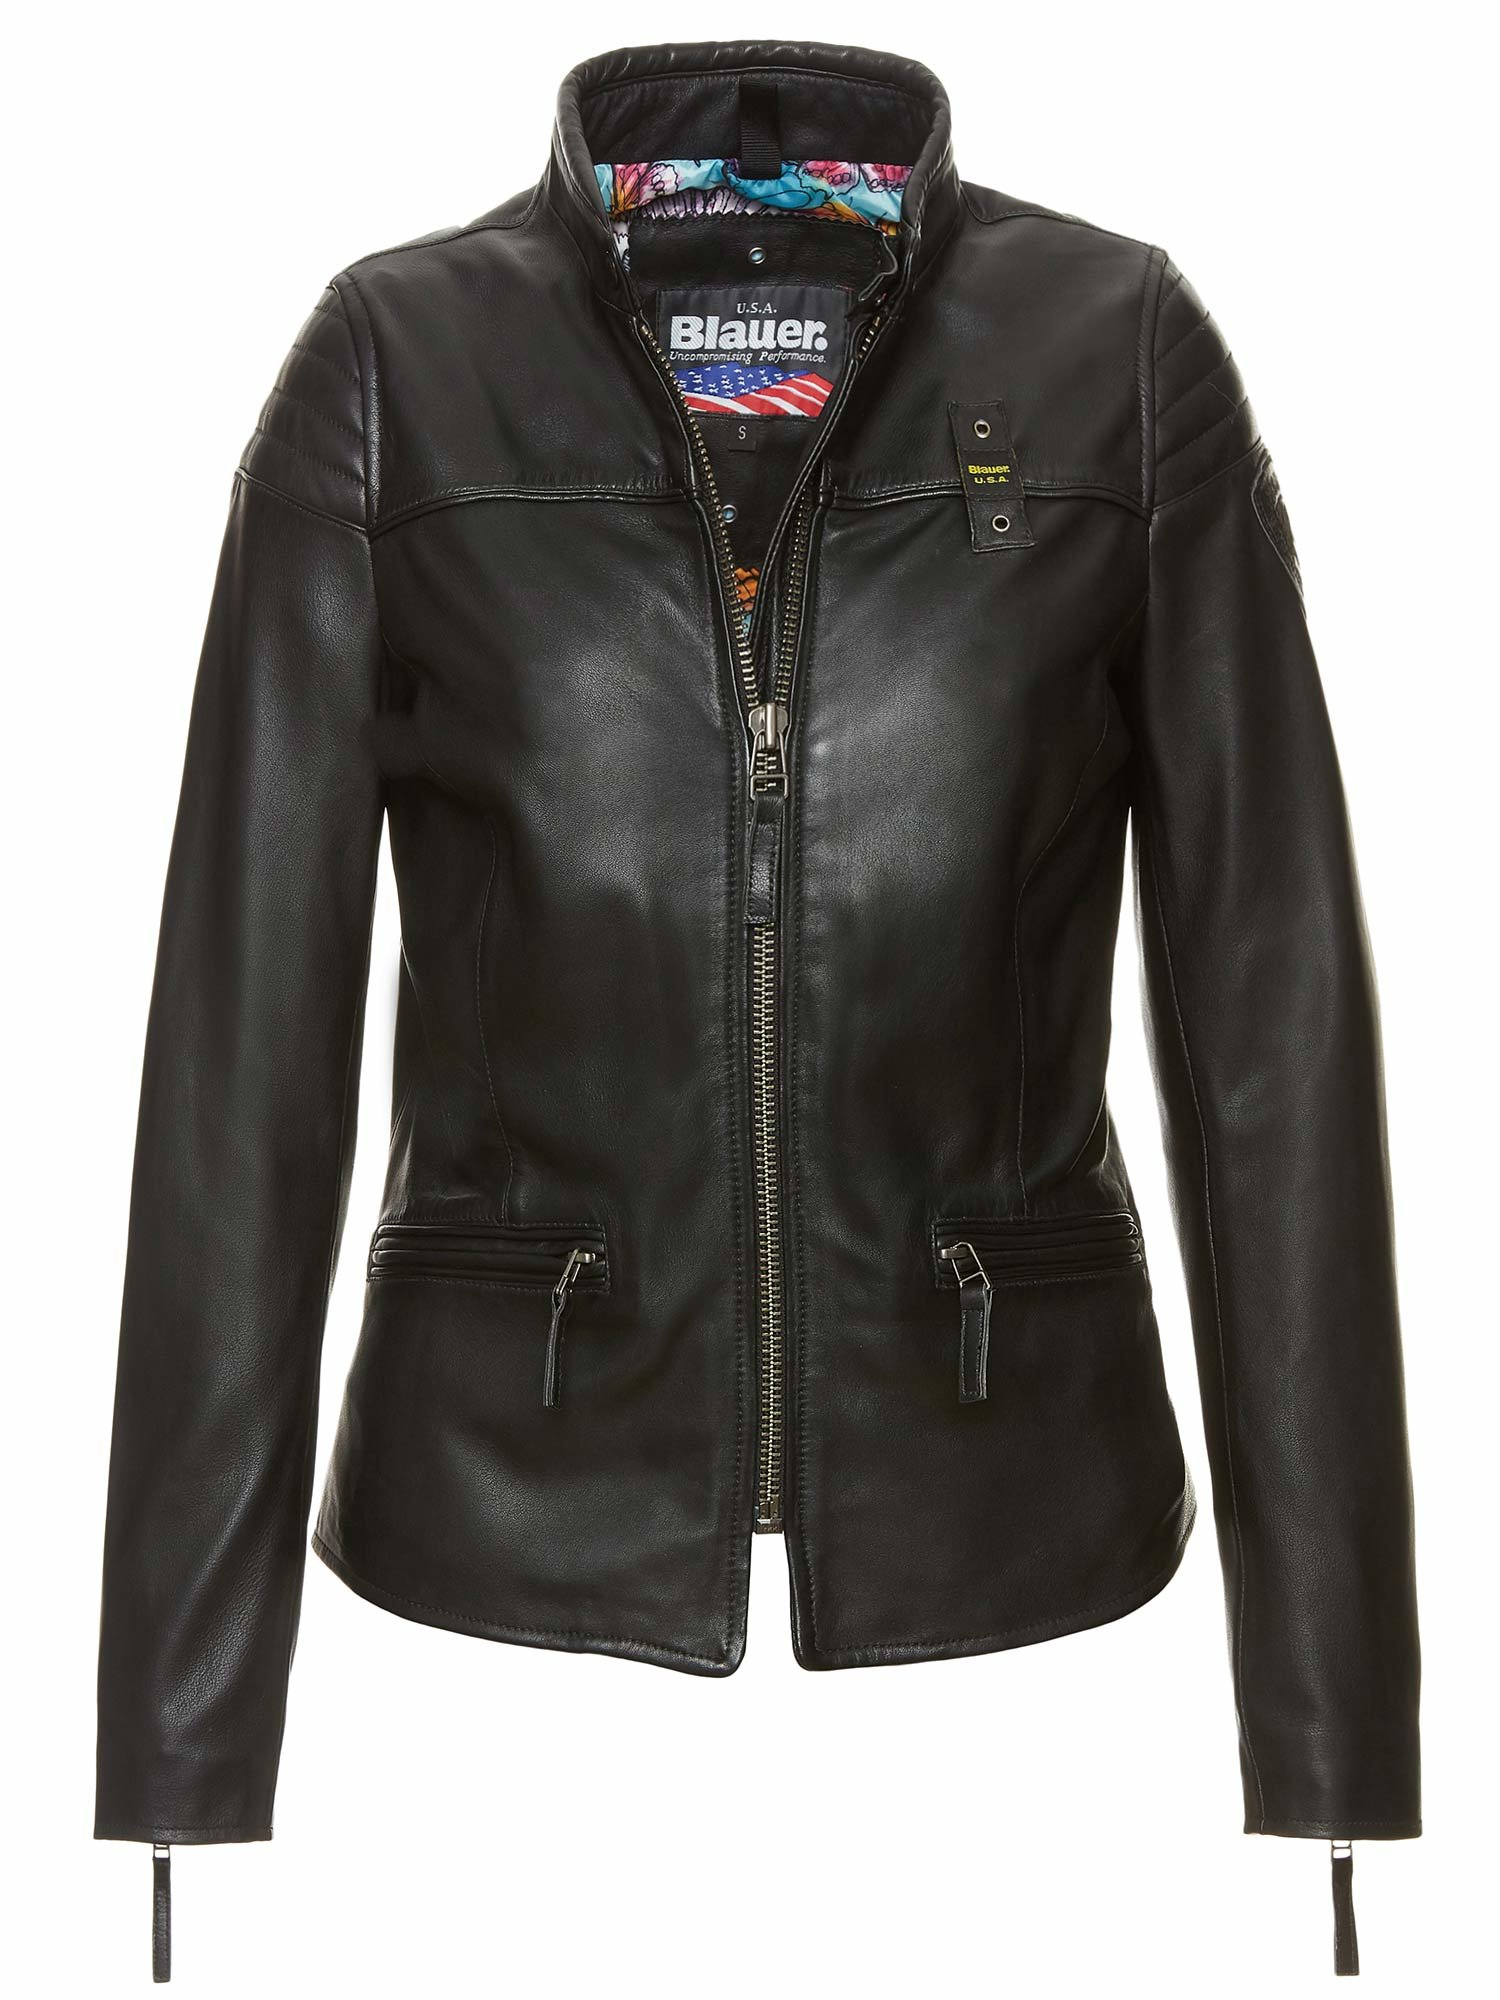 EMILY LEATHER JACKET - Blauer